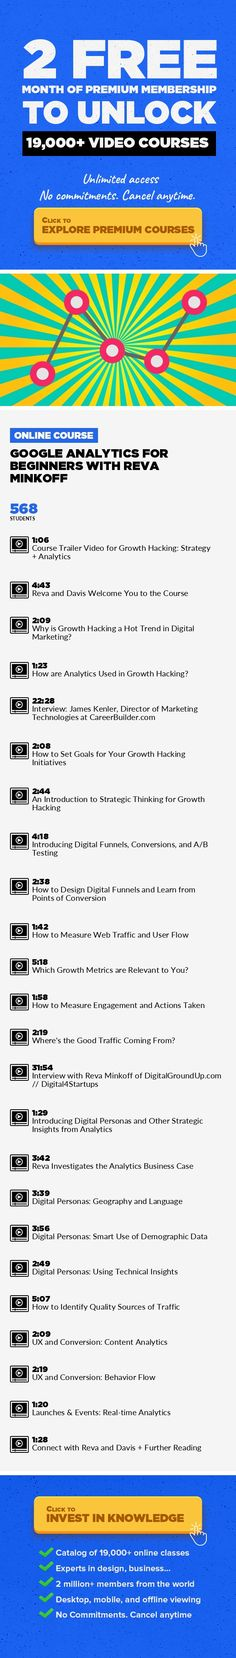 Google Analytics for Beginners with Reva Minkoff Entrepreneurship, Marketing, Business, Web Development, Web Design, Business Development, Creative Writing, Content Marketing #onlinecourses #onlinecoursescreation #MainCourses    Learn to Leverage Growth Hacking and Launch Your Rocketship In this fun, interactive foundation course, you'll learn how to leverage one of Silicon Valley's most inter...